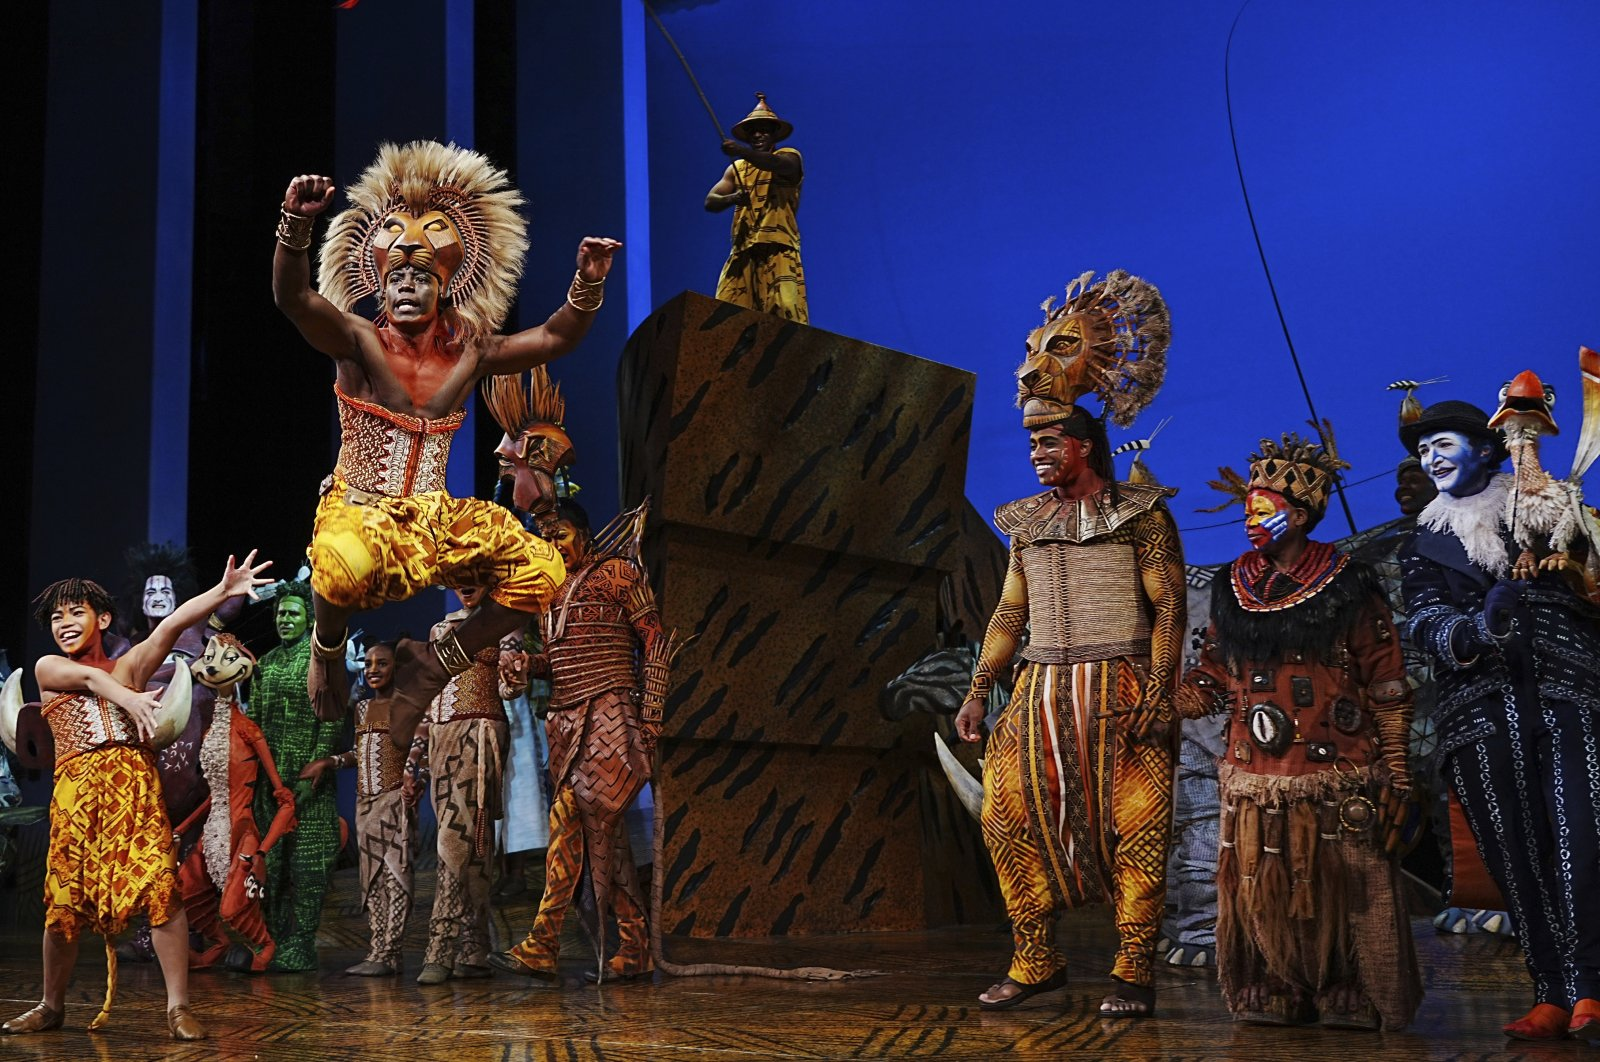 """""""The Lion King"""" cast appear at the curtain call following their first show back after the COVID-19 shutdown, at the Minskoff Theatre on Tuesday, Sept. 14, 2021, in New York. (AP Photo)"""